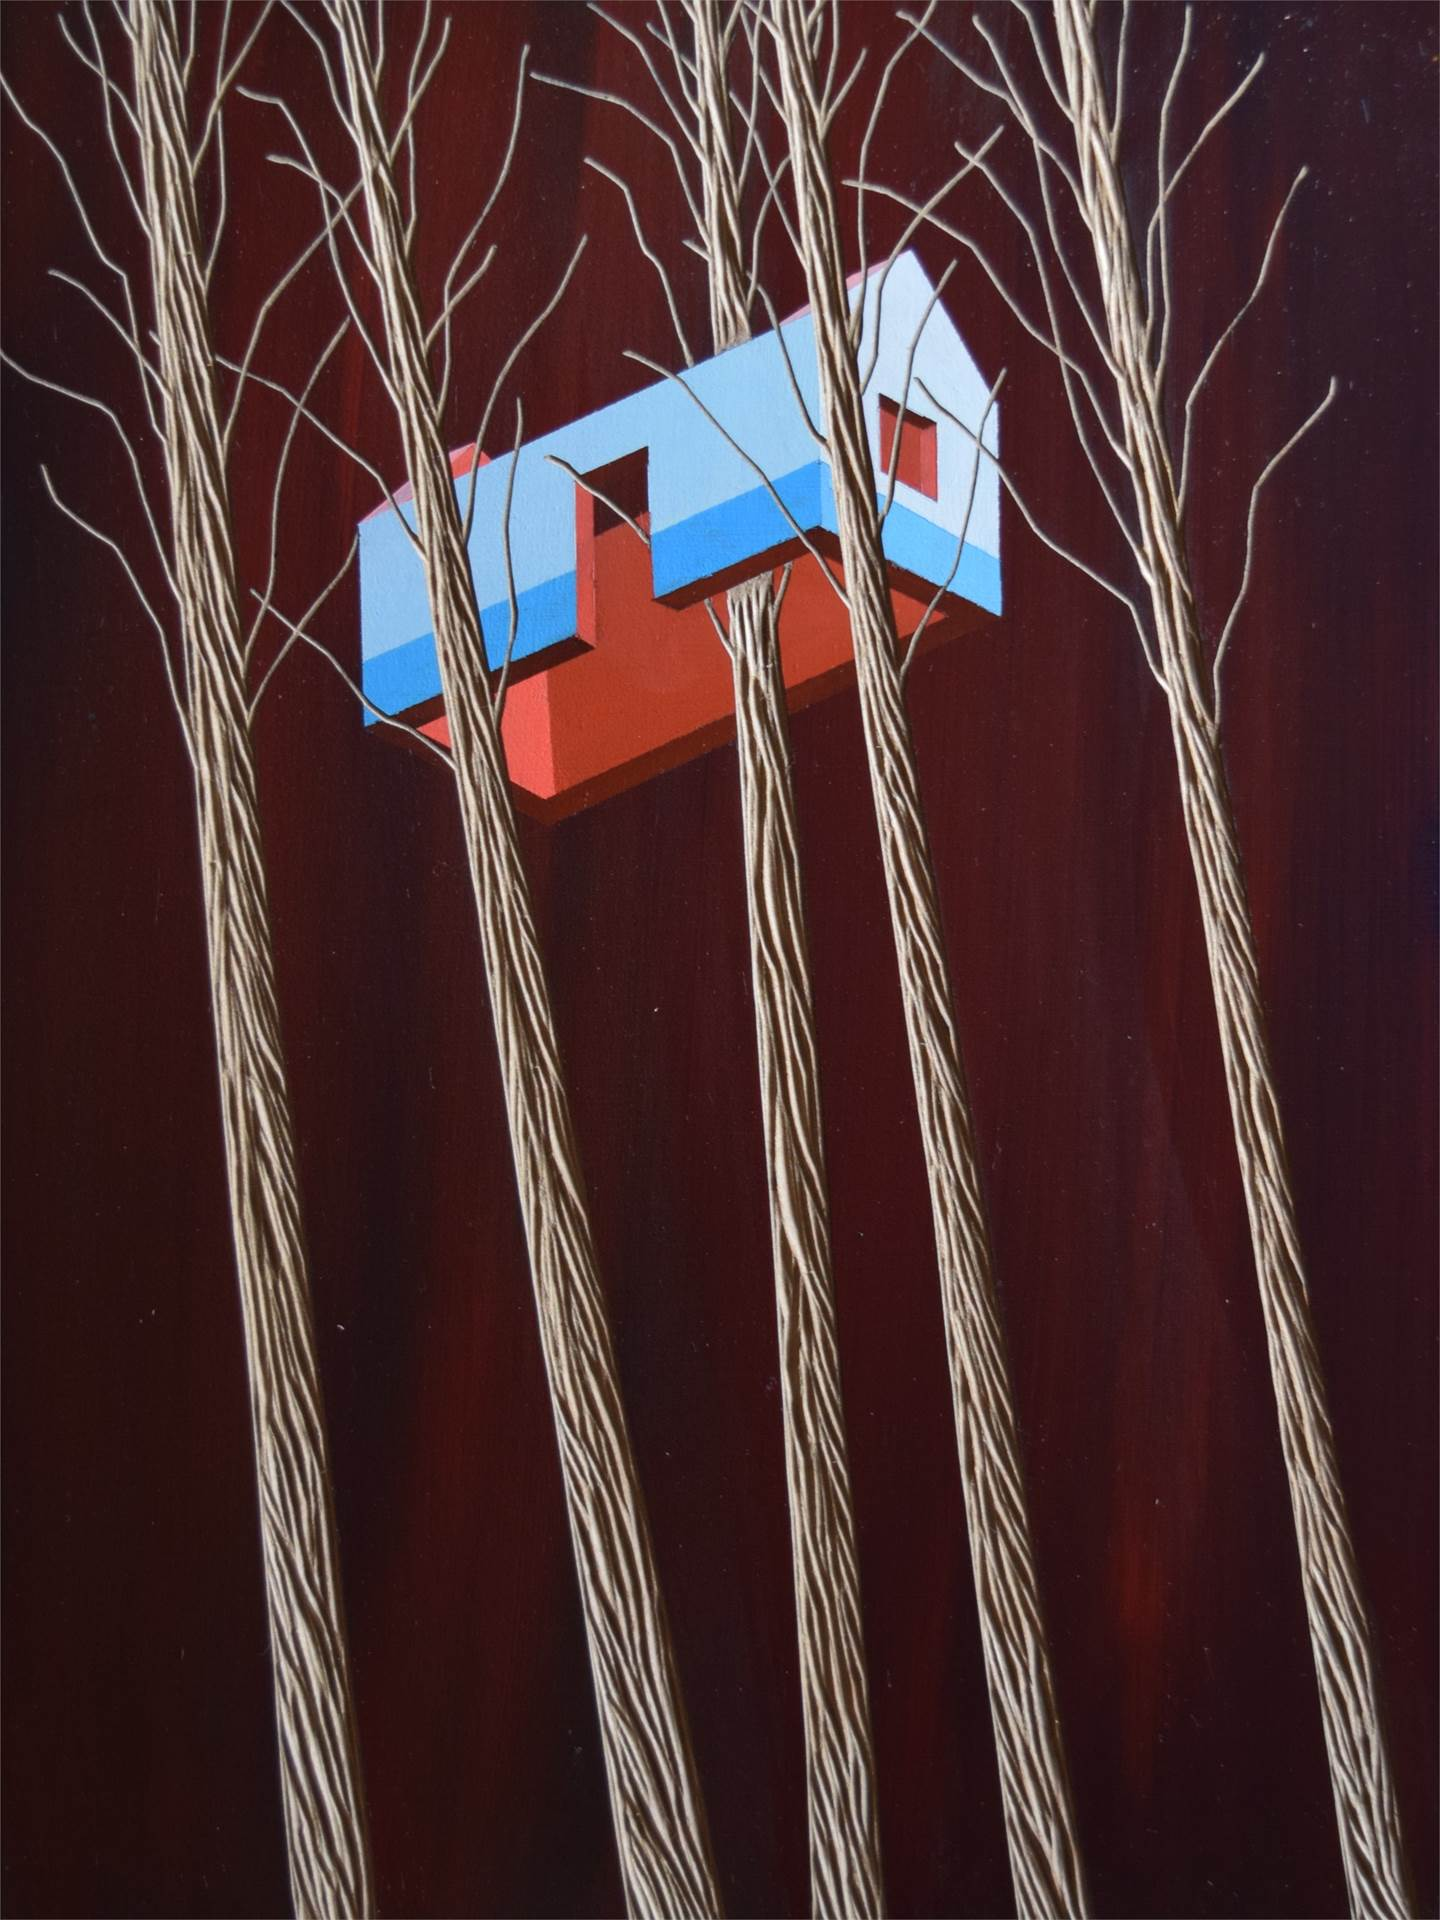 Building utopia_1, original Man Mixed Technique Painting by Domingos Loureiro